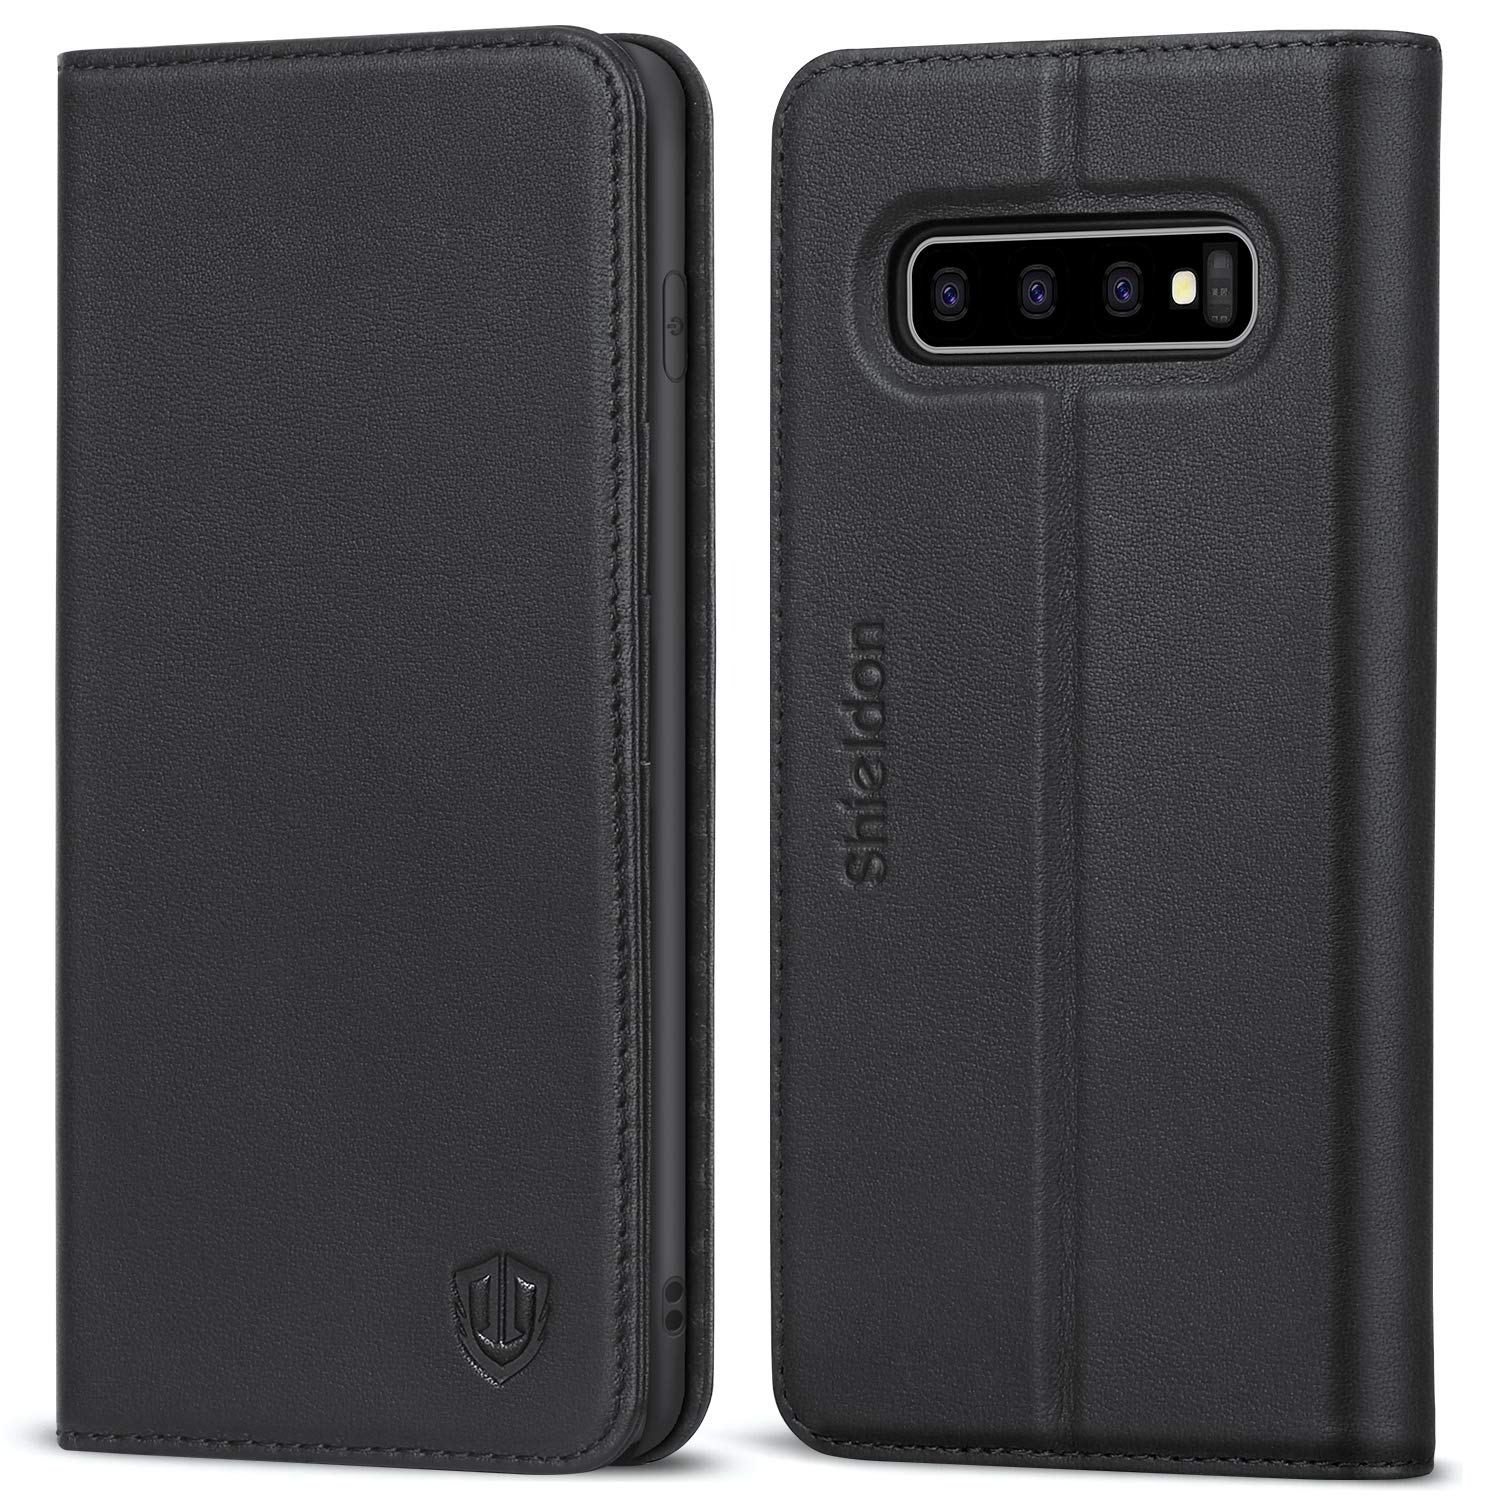 SHIELDON Galaxy S10 Plus Case, Genuine Leather S10+ Plus Wallet Book Case RFID Blocking Credit Card Slot Flip Magnetic Stand Case Compatible with Galaxy S10Plus (2019 Release) - Black